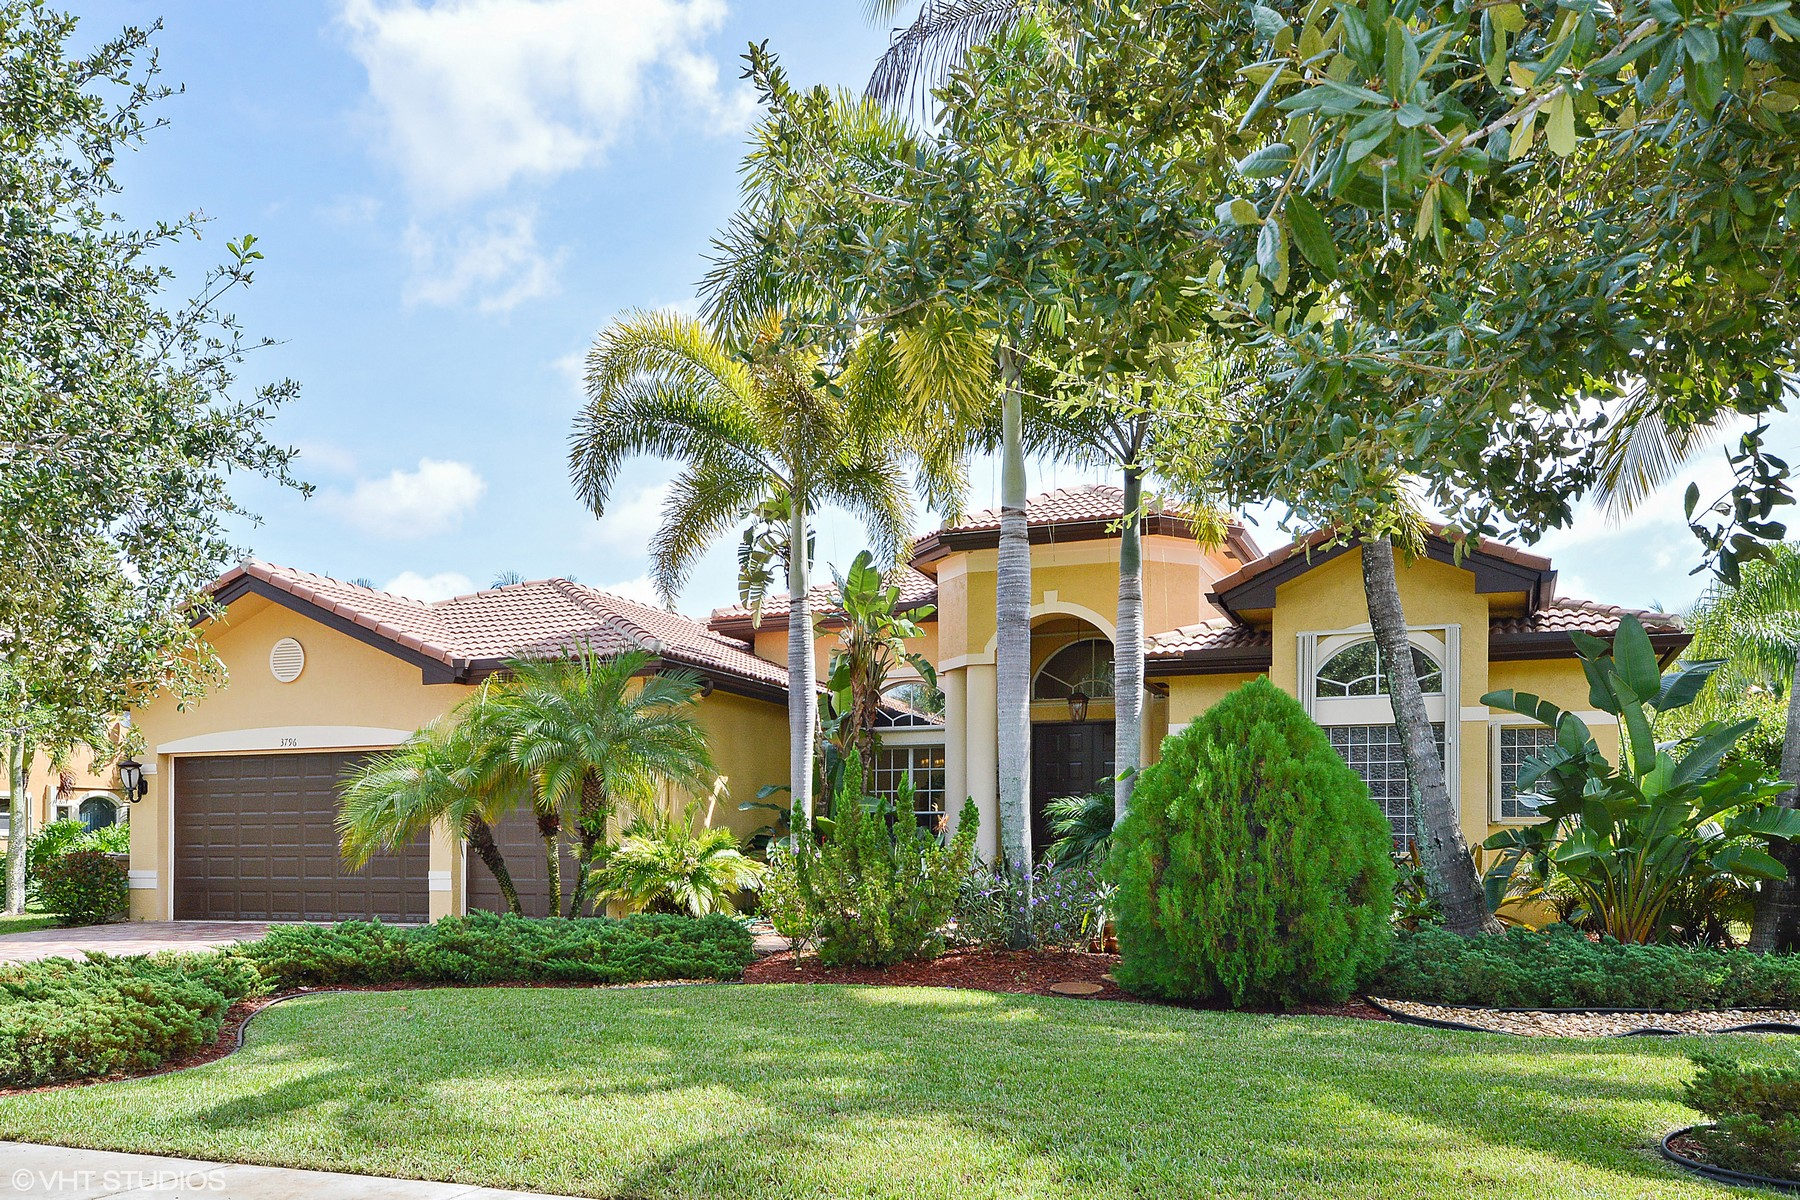 Villa per Vendita alle ore Long Lake Ranches 3796 Saratoga Ln Davie, Florida 33328 Stati Uniti